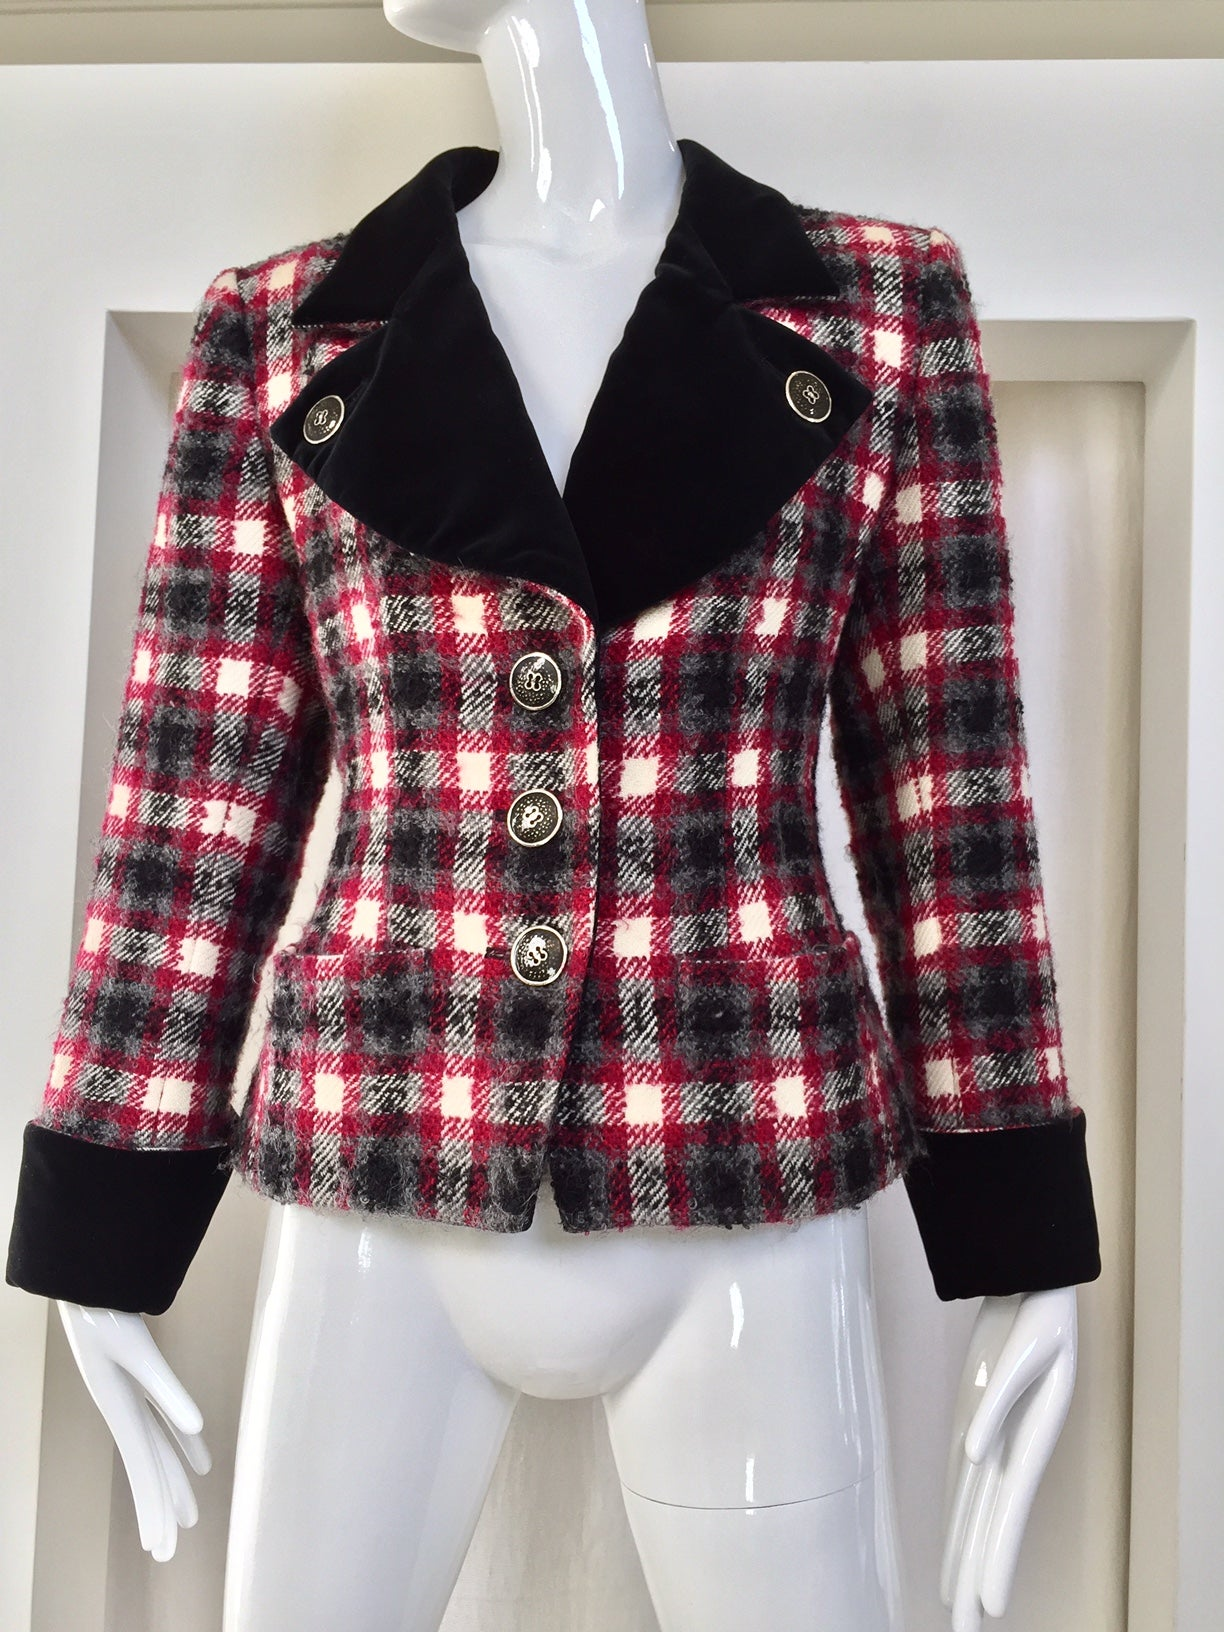 1bf8b54b585 Vintage Yves Saint Laurent rive gauche red and grey fitted jacket For Sale  at 1stdibs